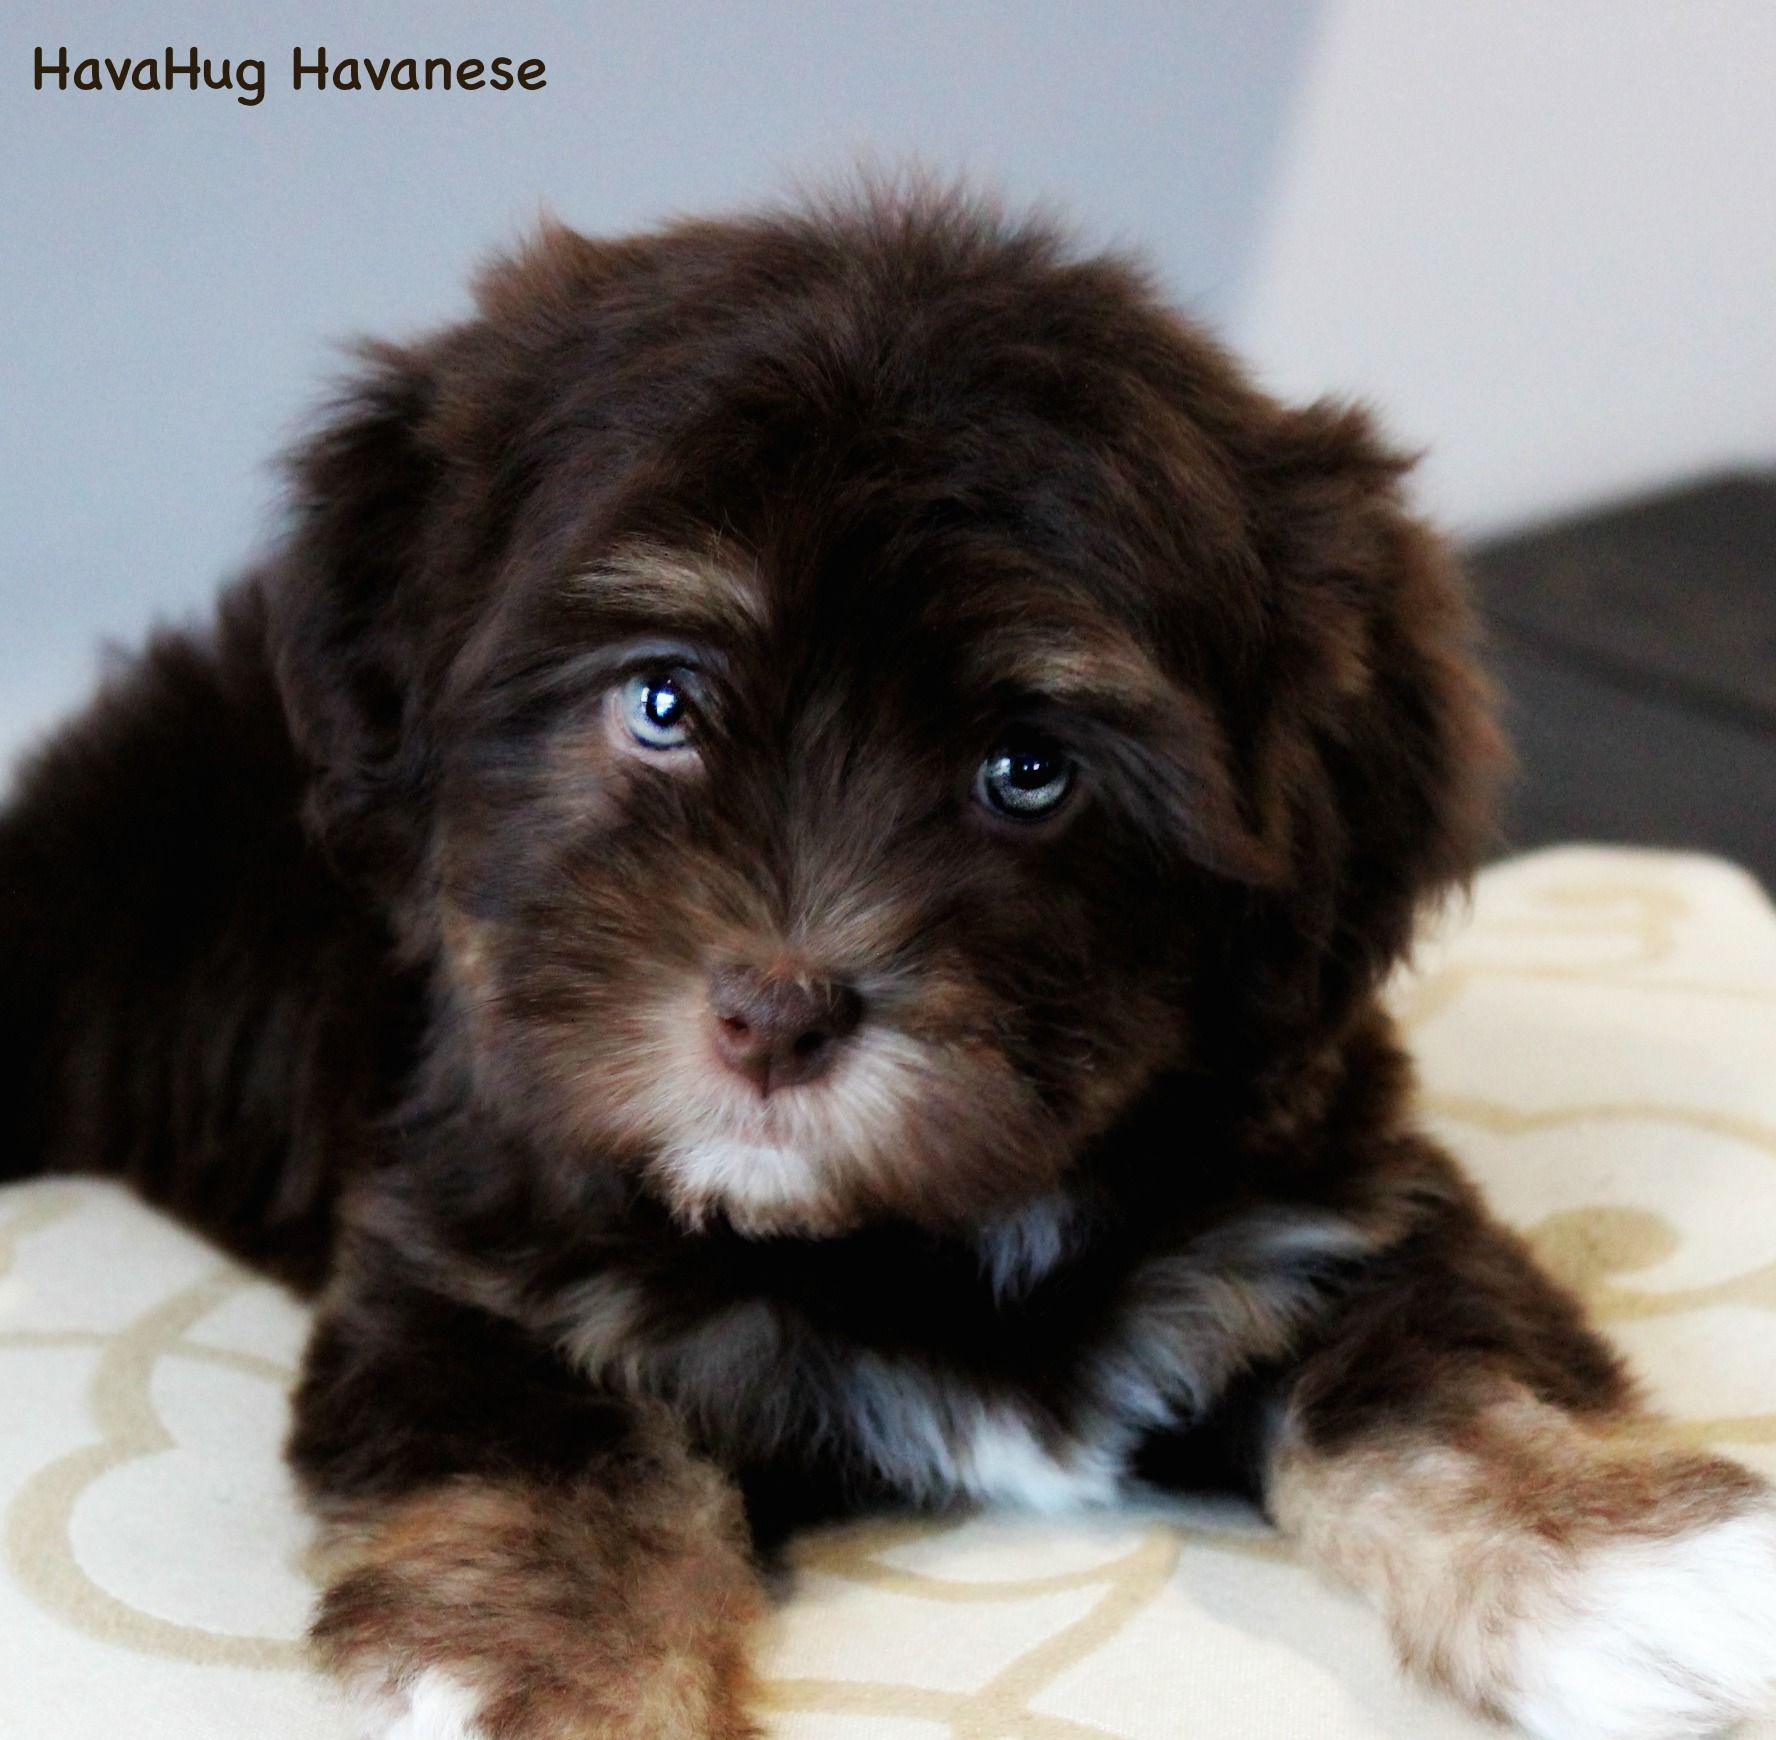 The World S Most Beauitiful Chocolate Havanese Puppies 3 Www Havahughavanese Com Havanese Puppies Havanese Dogs Puppies